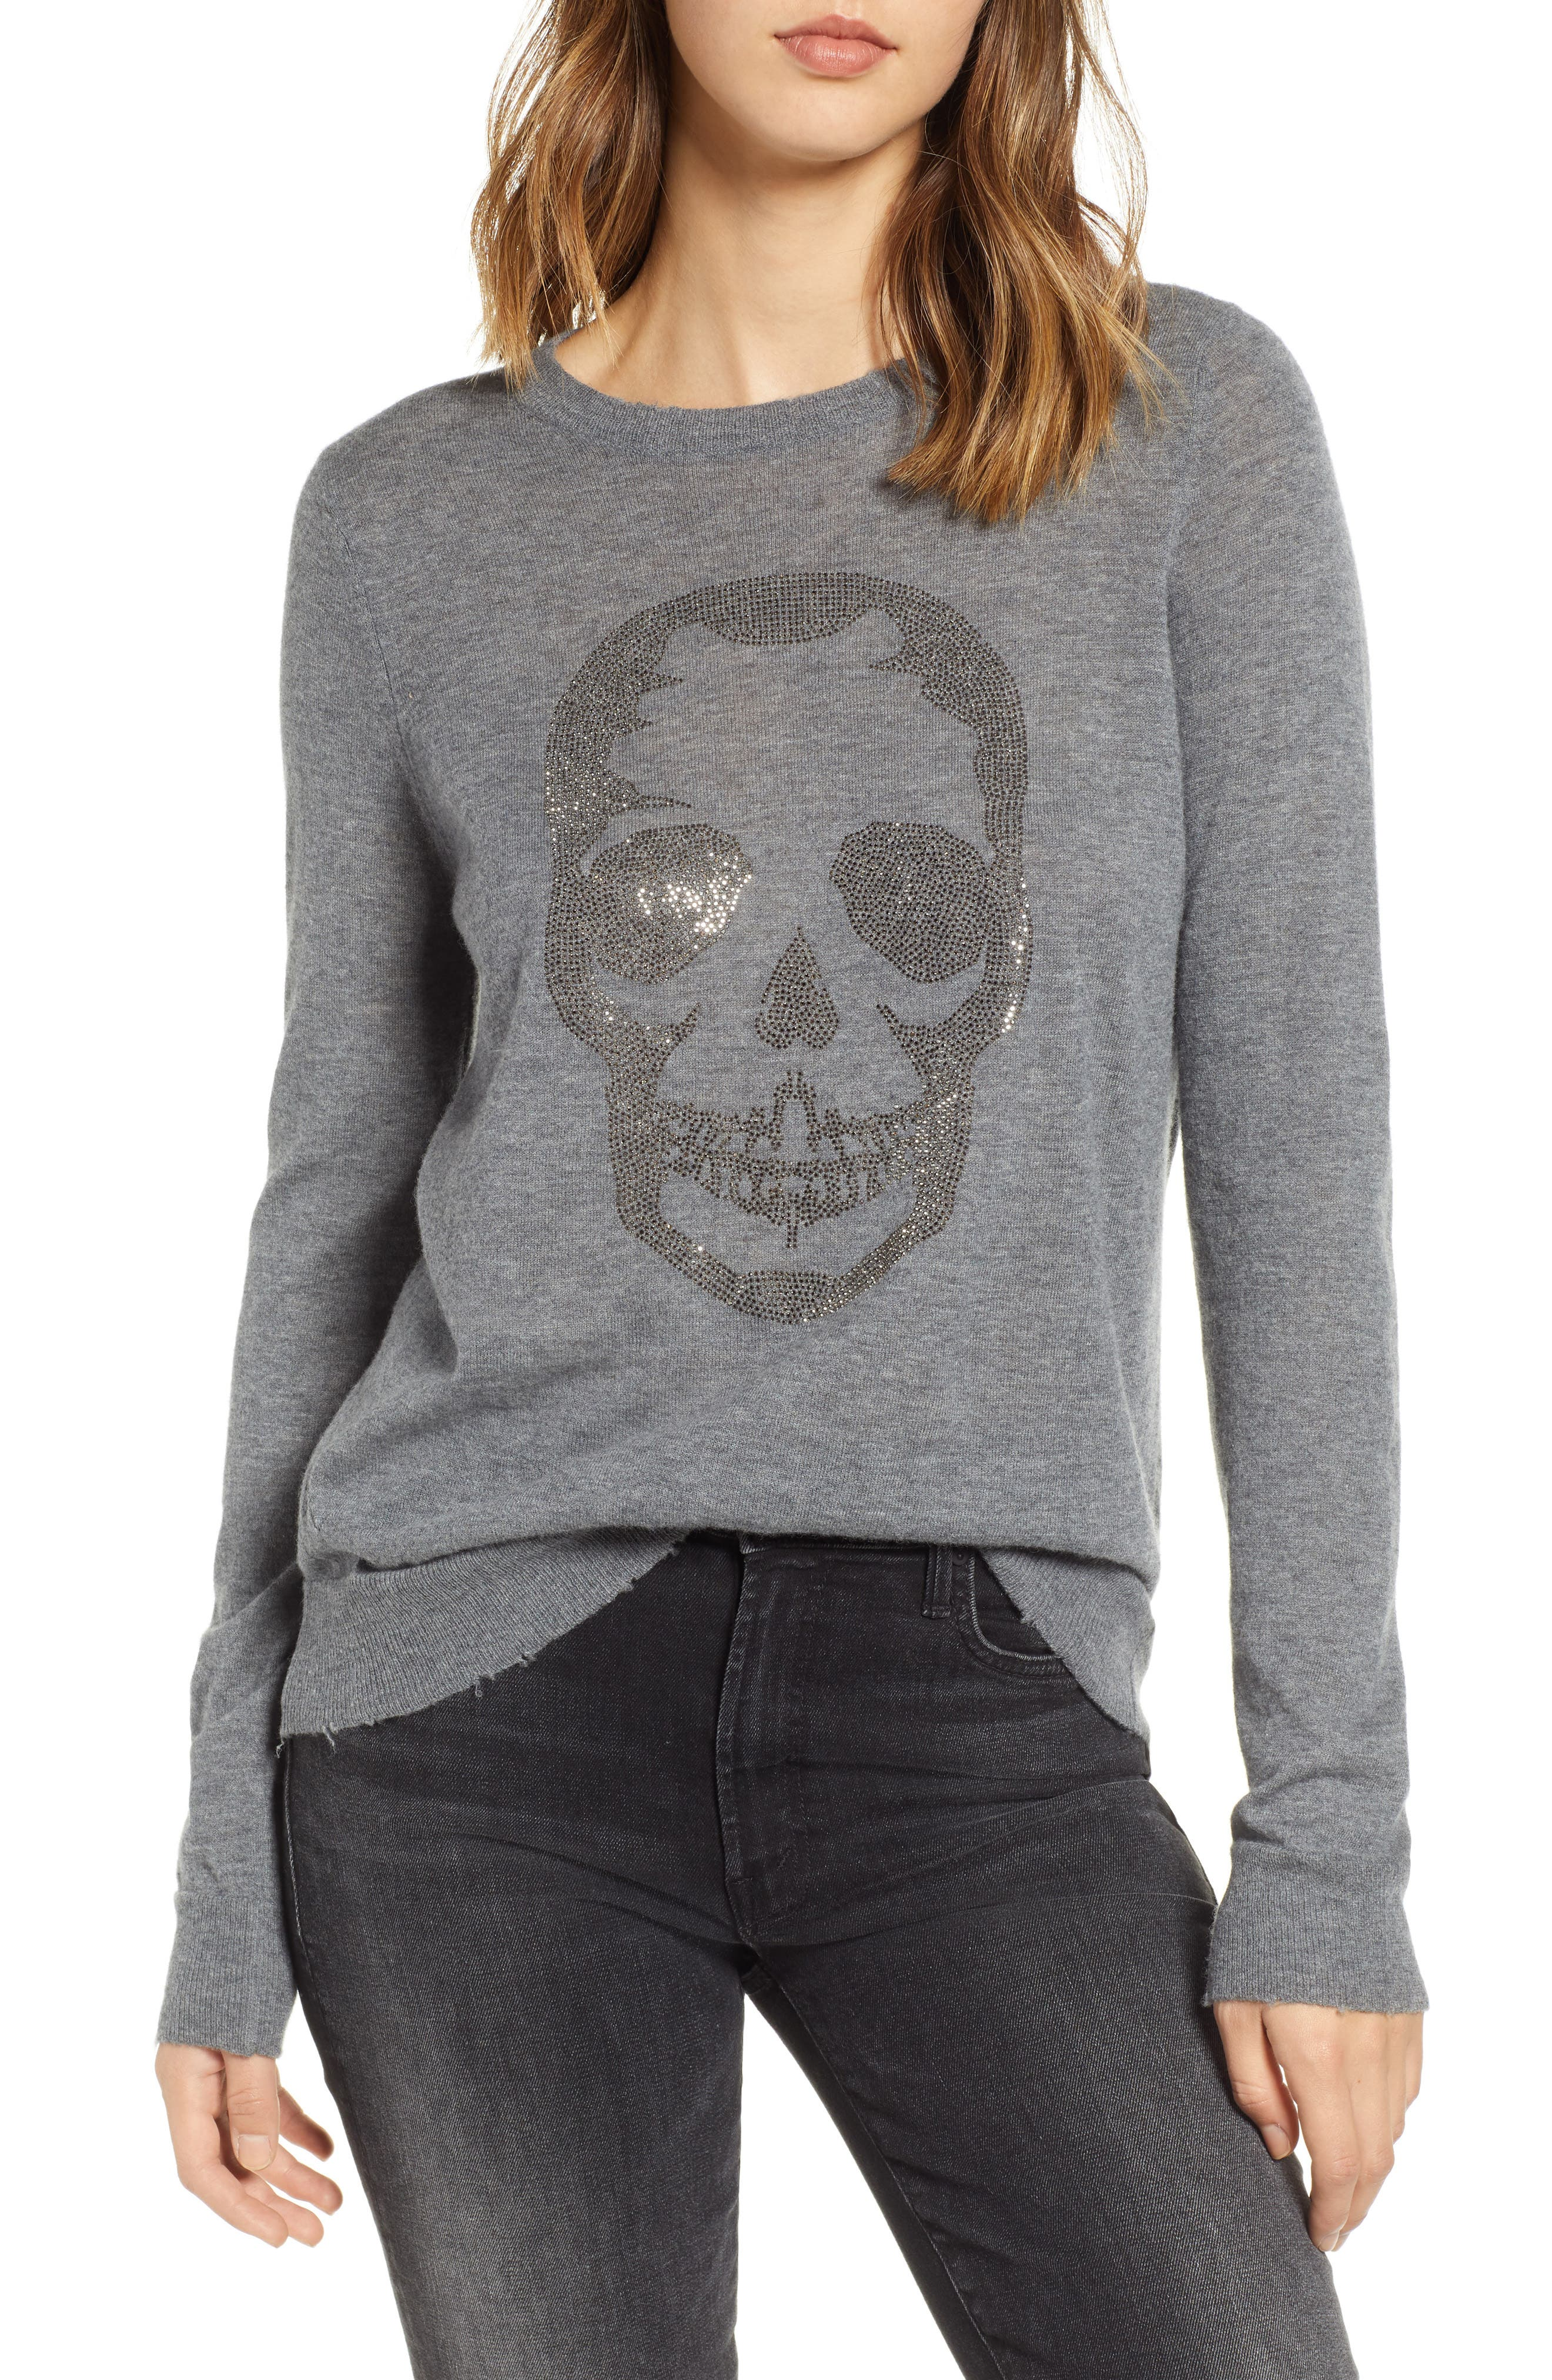 Miss Bis Skull Cashmere Tee,                             Main thumbnail 1, color,                             GRIS